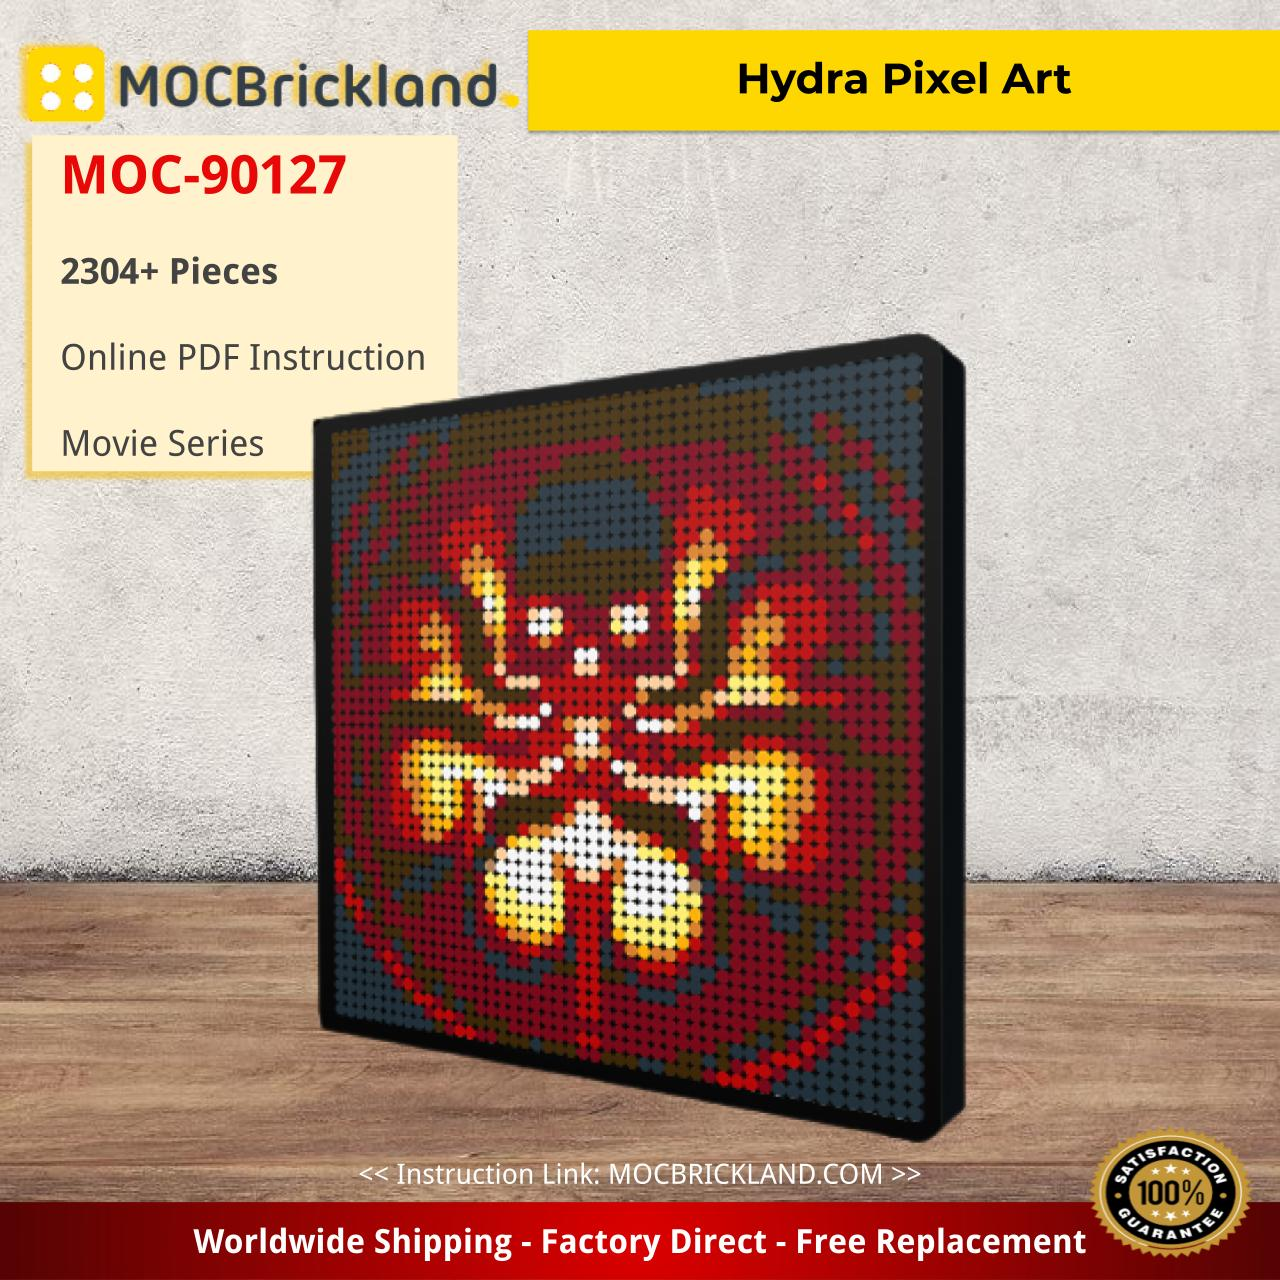 Hydra Pixel Art Creator MOC-90127 with 2304 pieces